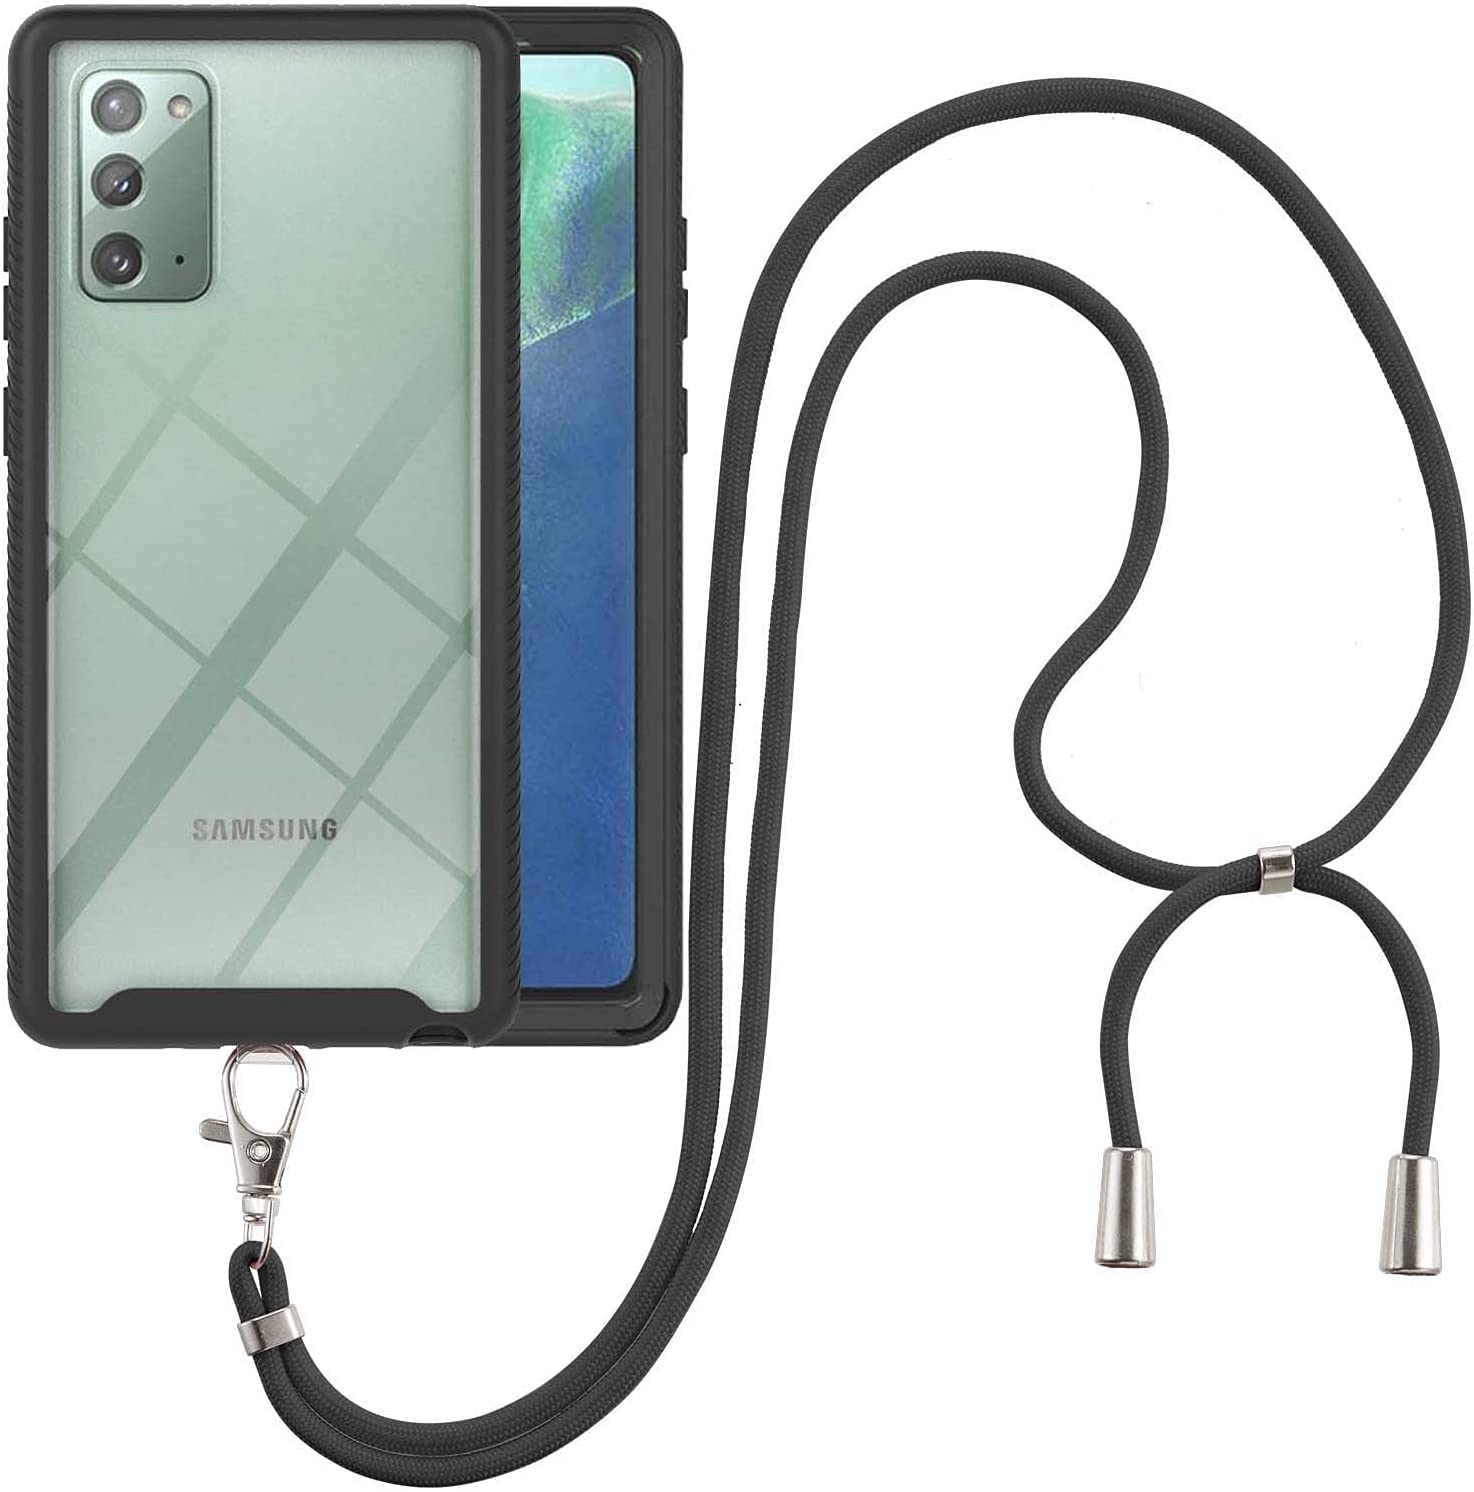 Samsung Note 20 Case, EabHulie Transparent Back No-Slip Bumper with Adjustable Crossbody Lanyard Strap Case, Shockproof Full Body Protection Cover for Samsung Galaxy Note 20 Black